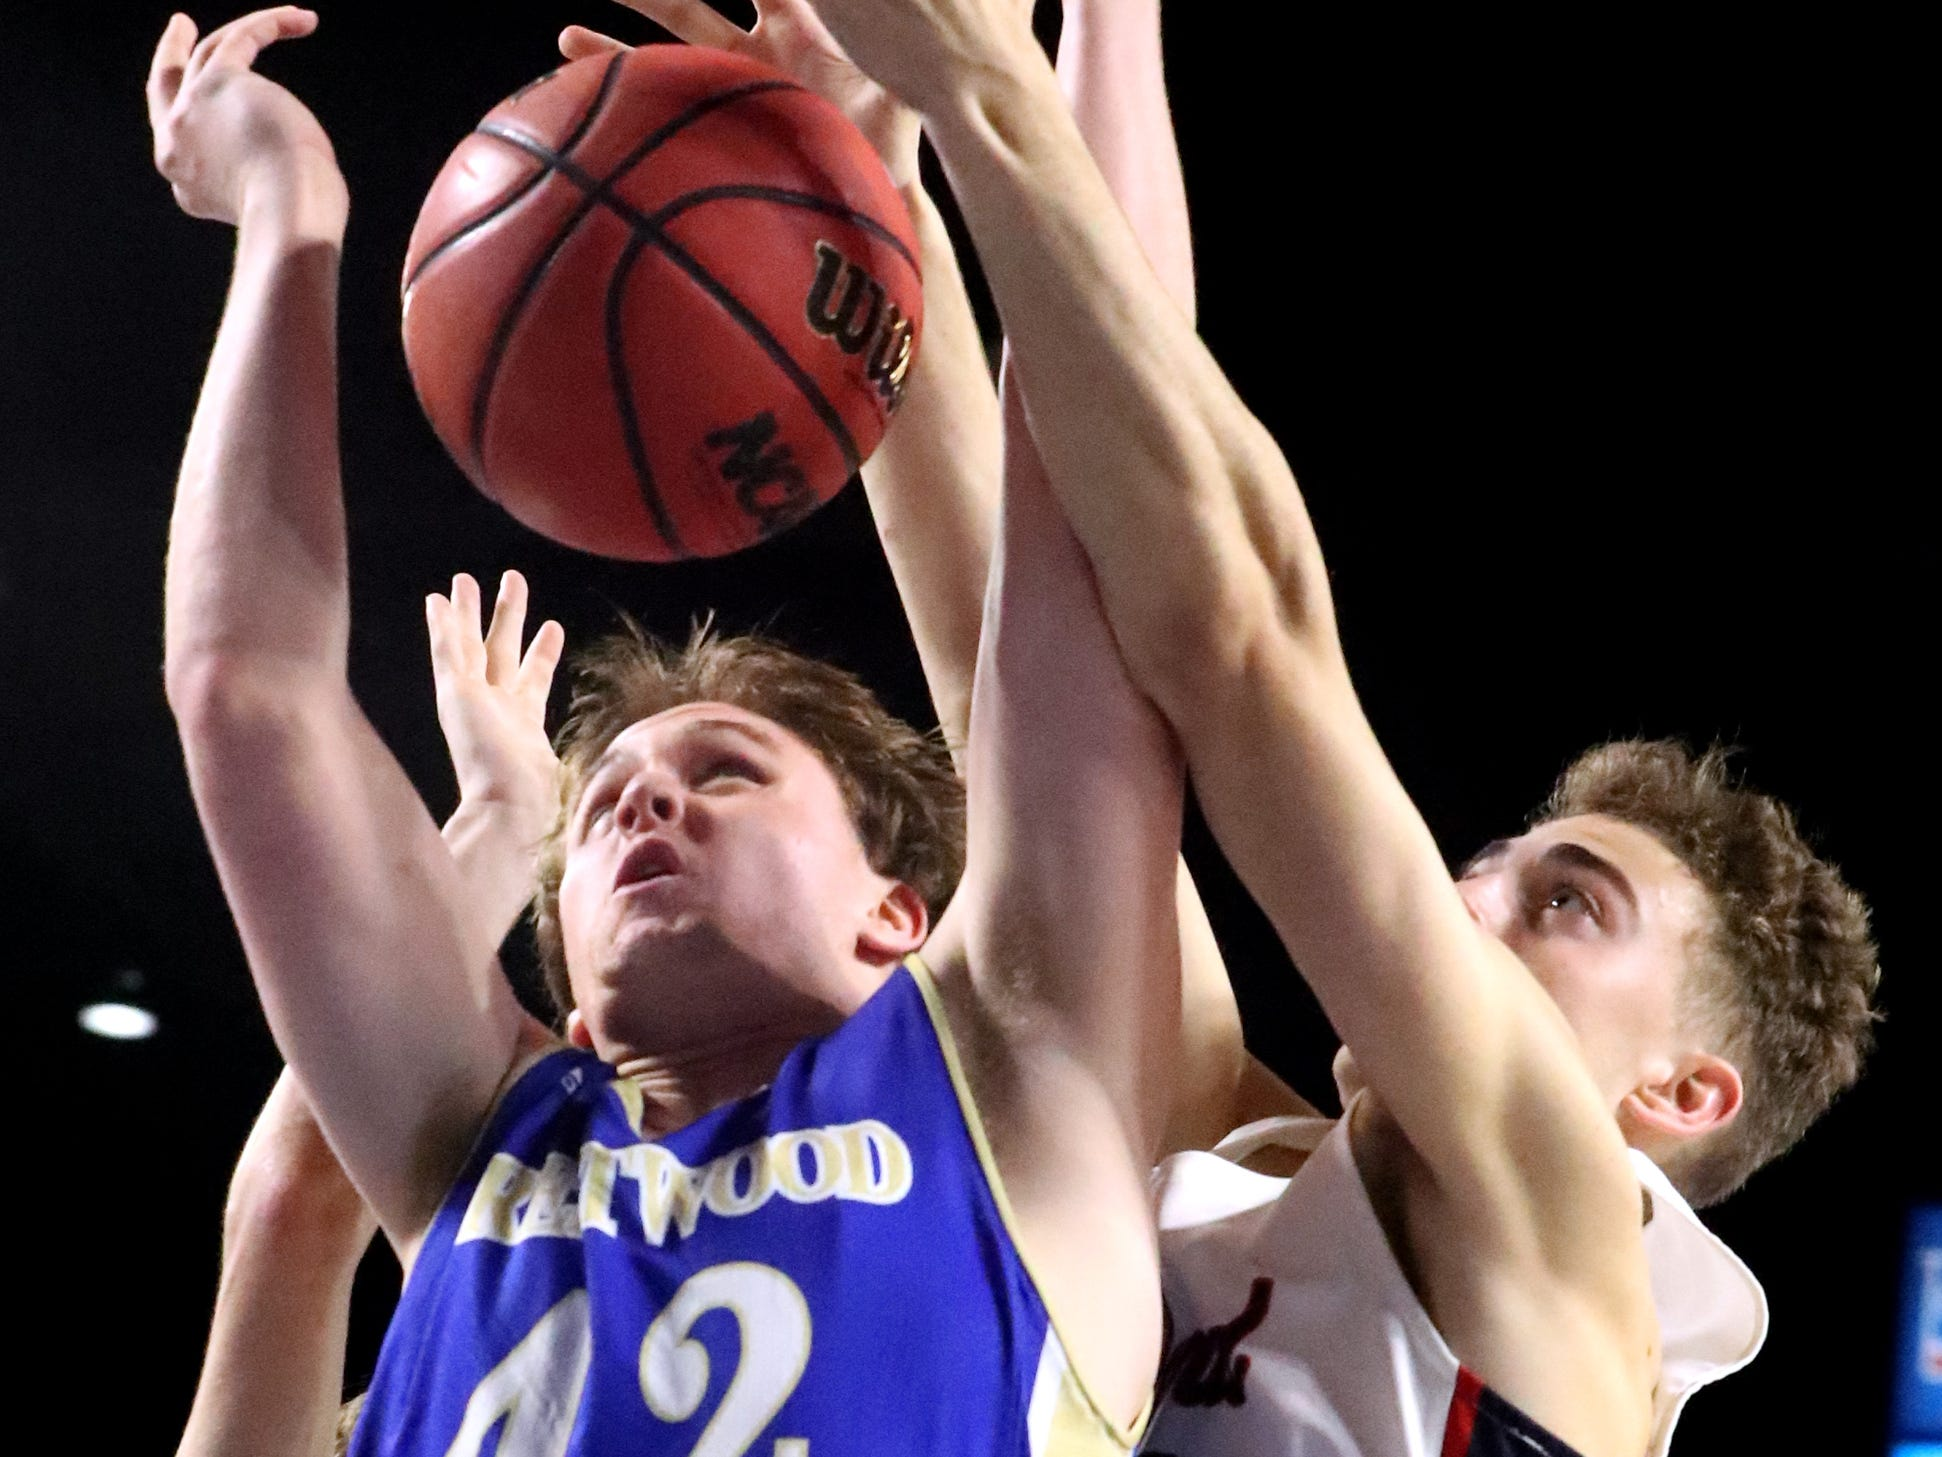 Brentwood's Evan Drennan (42) and Oakland's Carter Baughn (32) both go after a rebound during the quarterfinal round of the TSSAA Class AAA Boys State Tournament, on Thursday, March 14, 2019, at Murphy Center in Murfreesboro, Tenn.